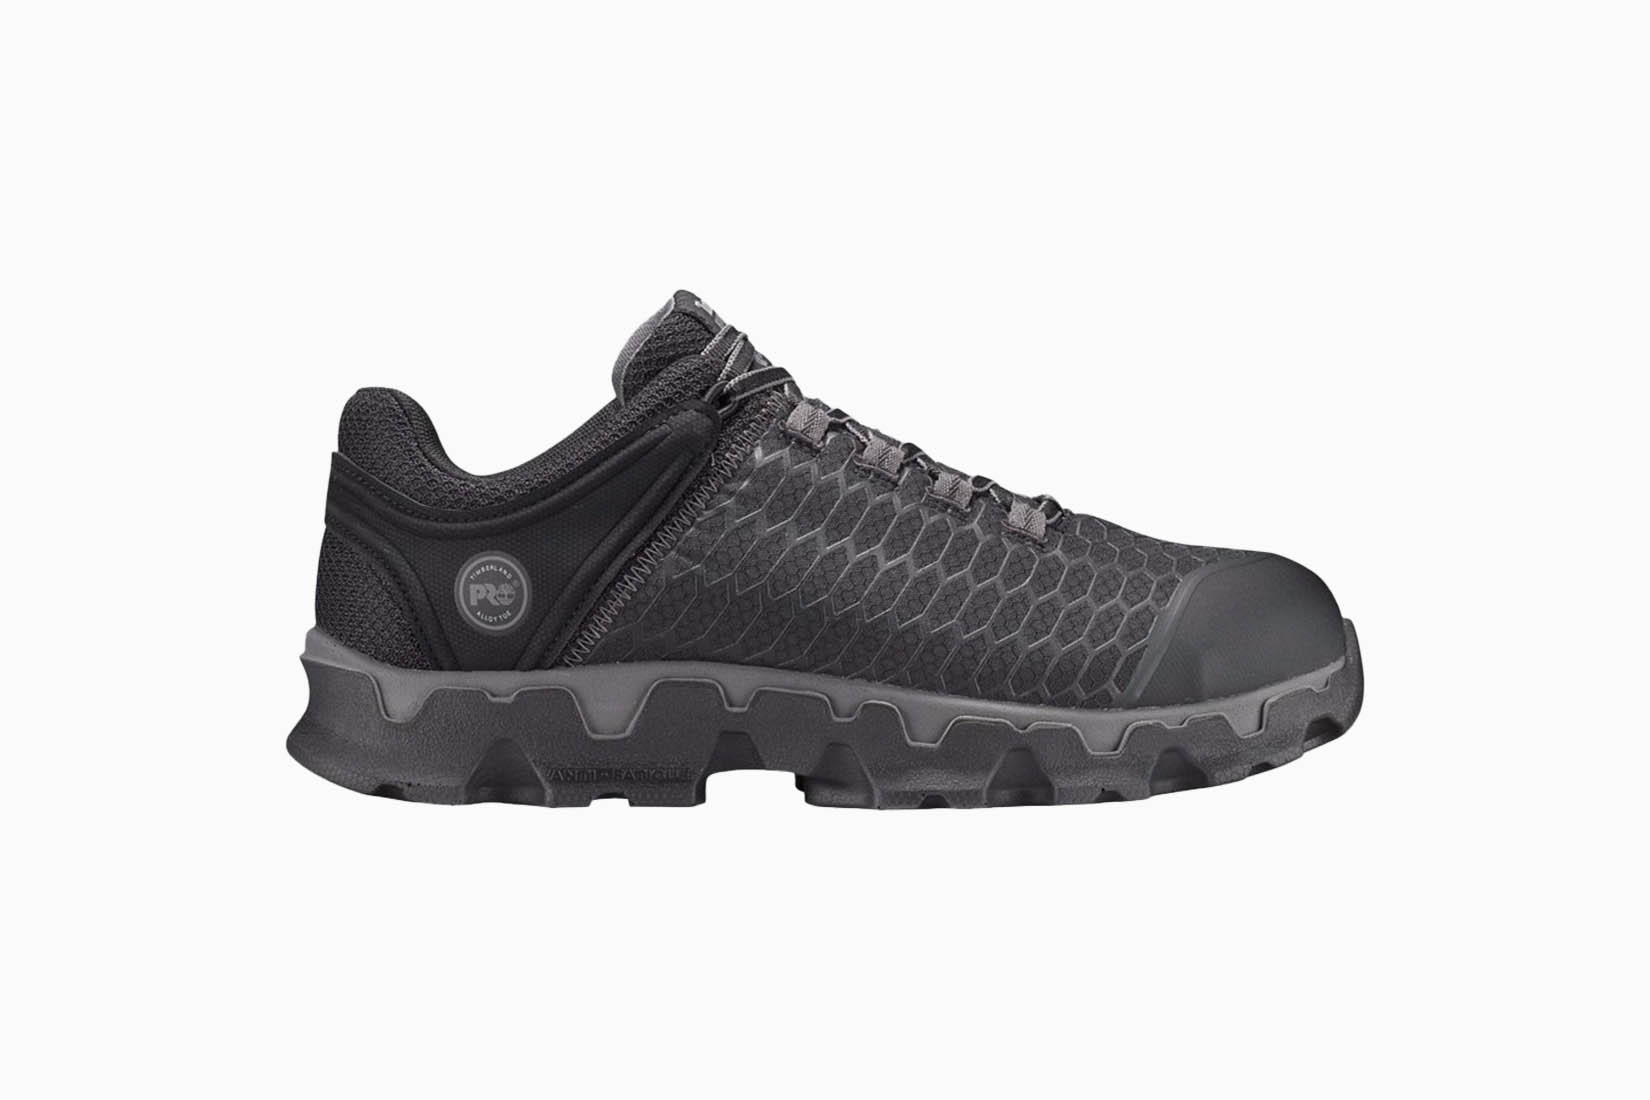 best shoes for standing all day men timberland review Luxe Digital